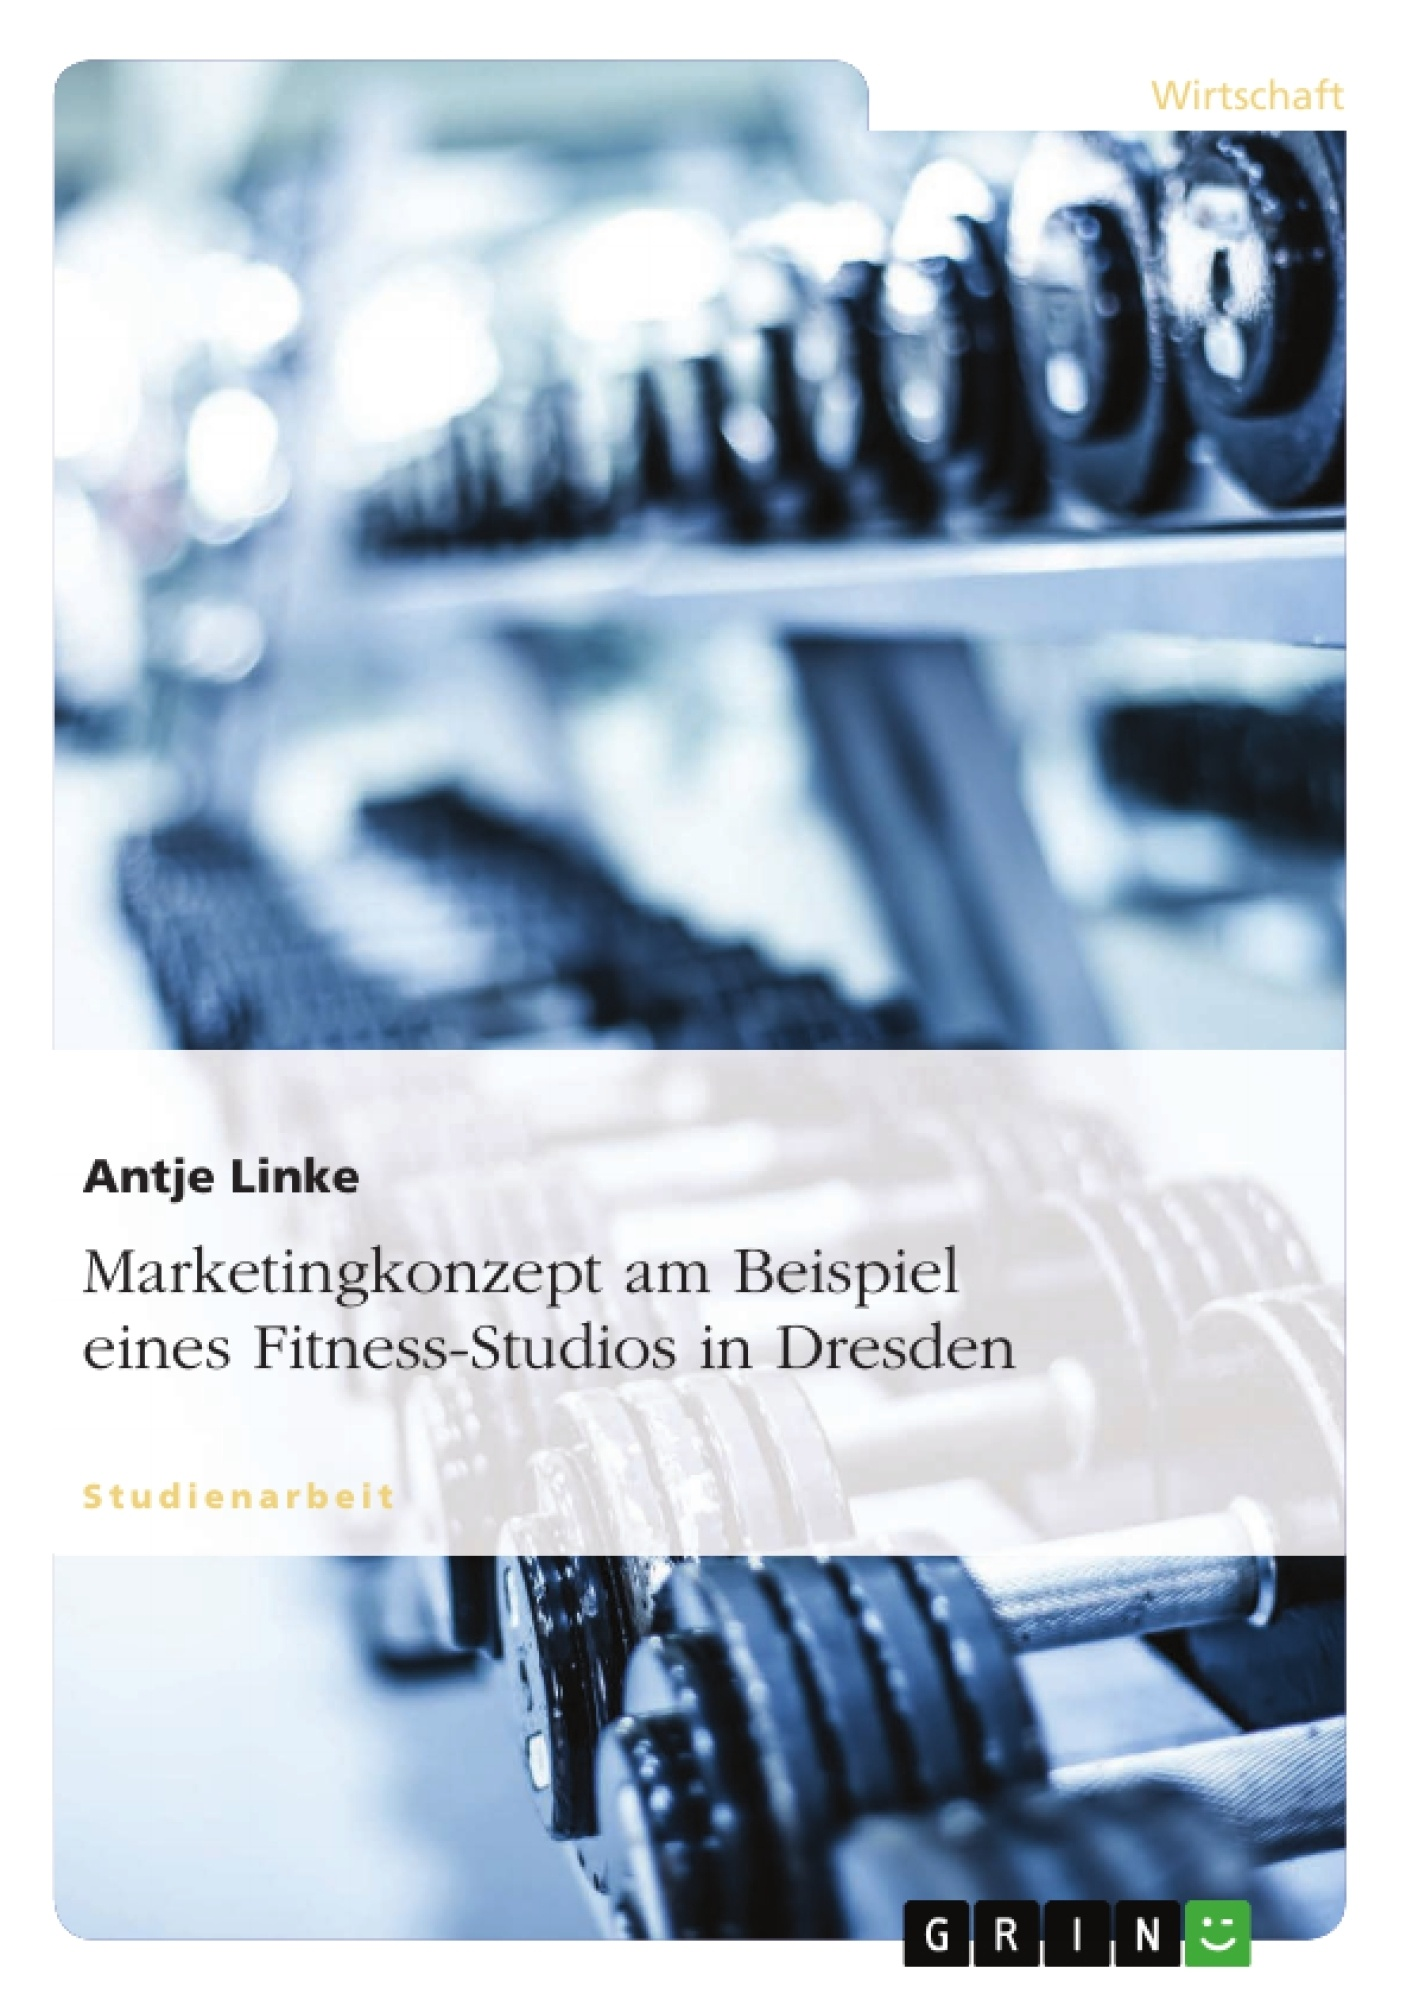 Titel: Marketingkonzept am Beispiel eines Fitness-Studios in Dresden